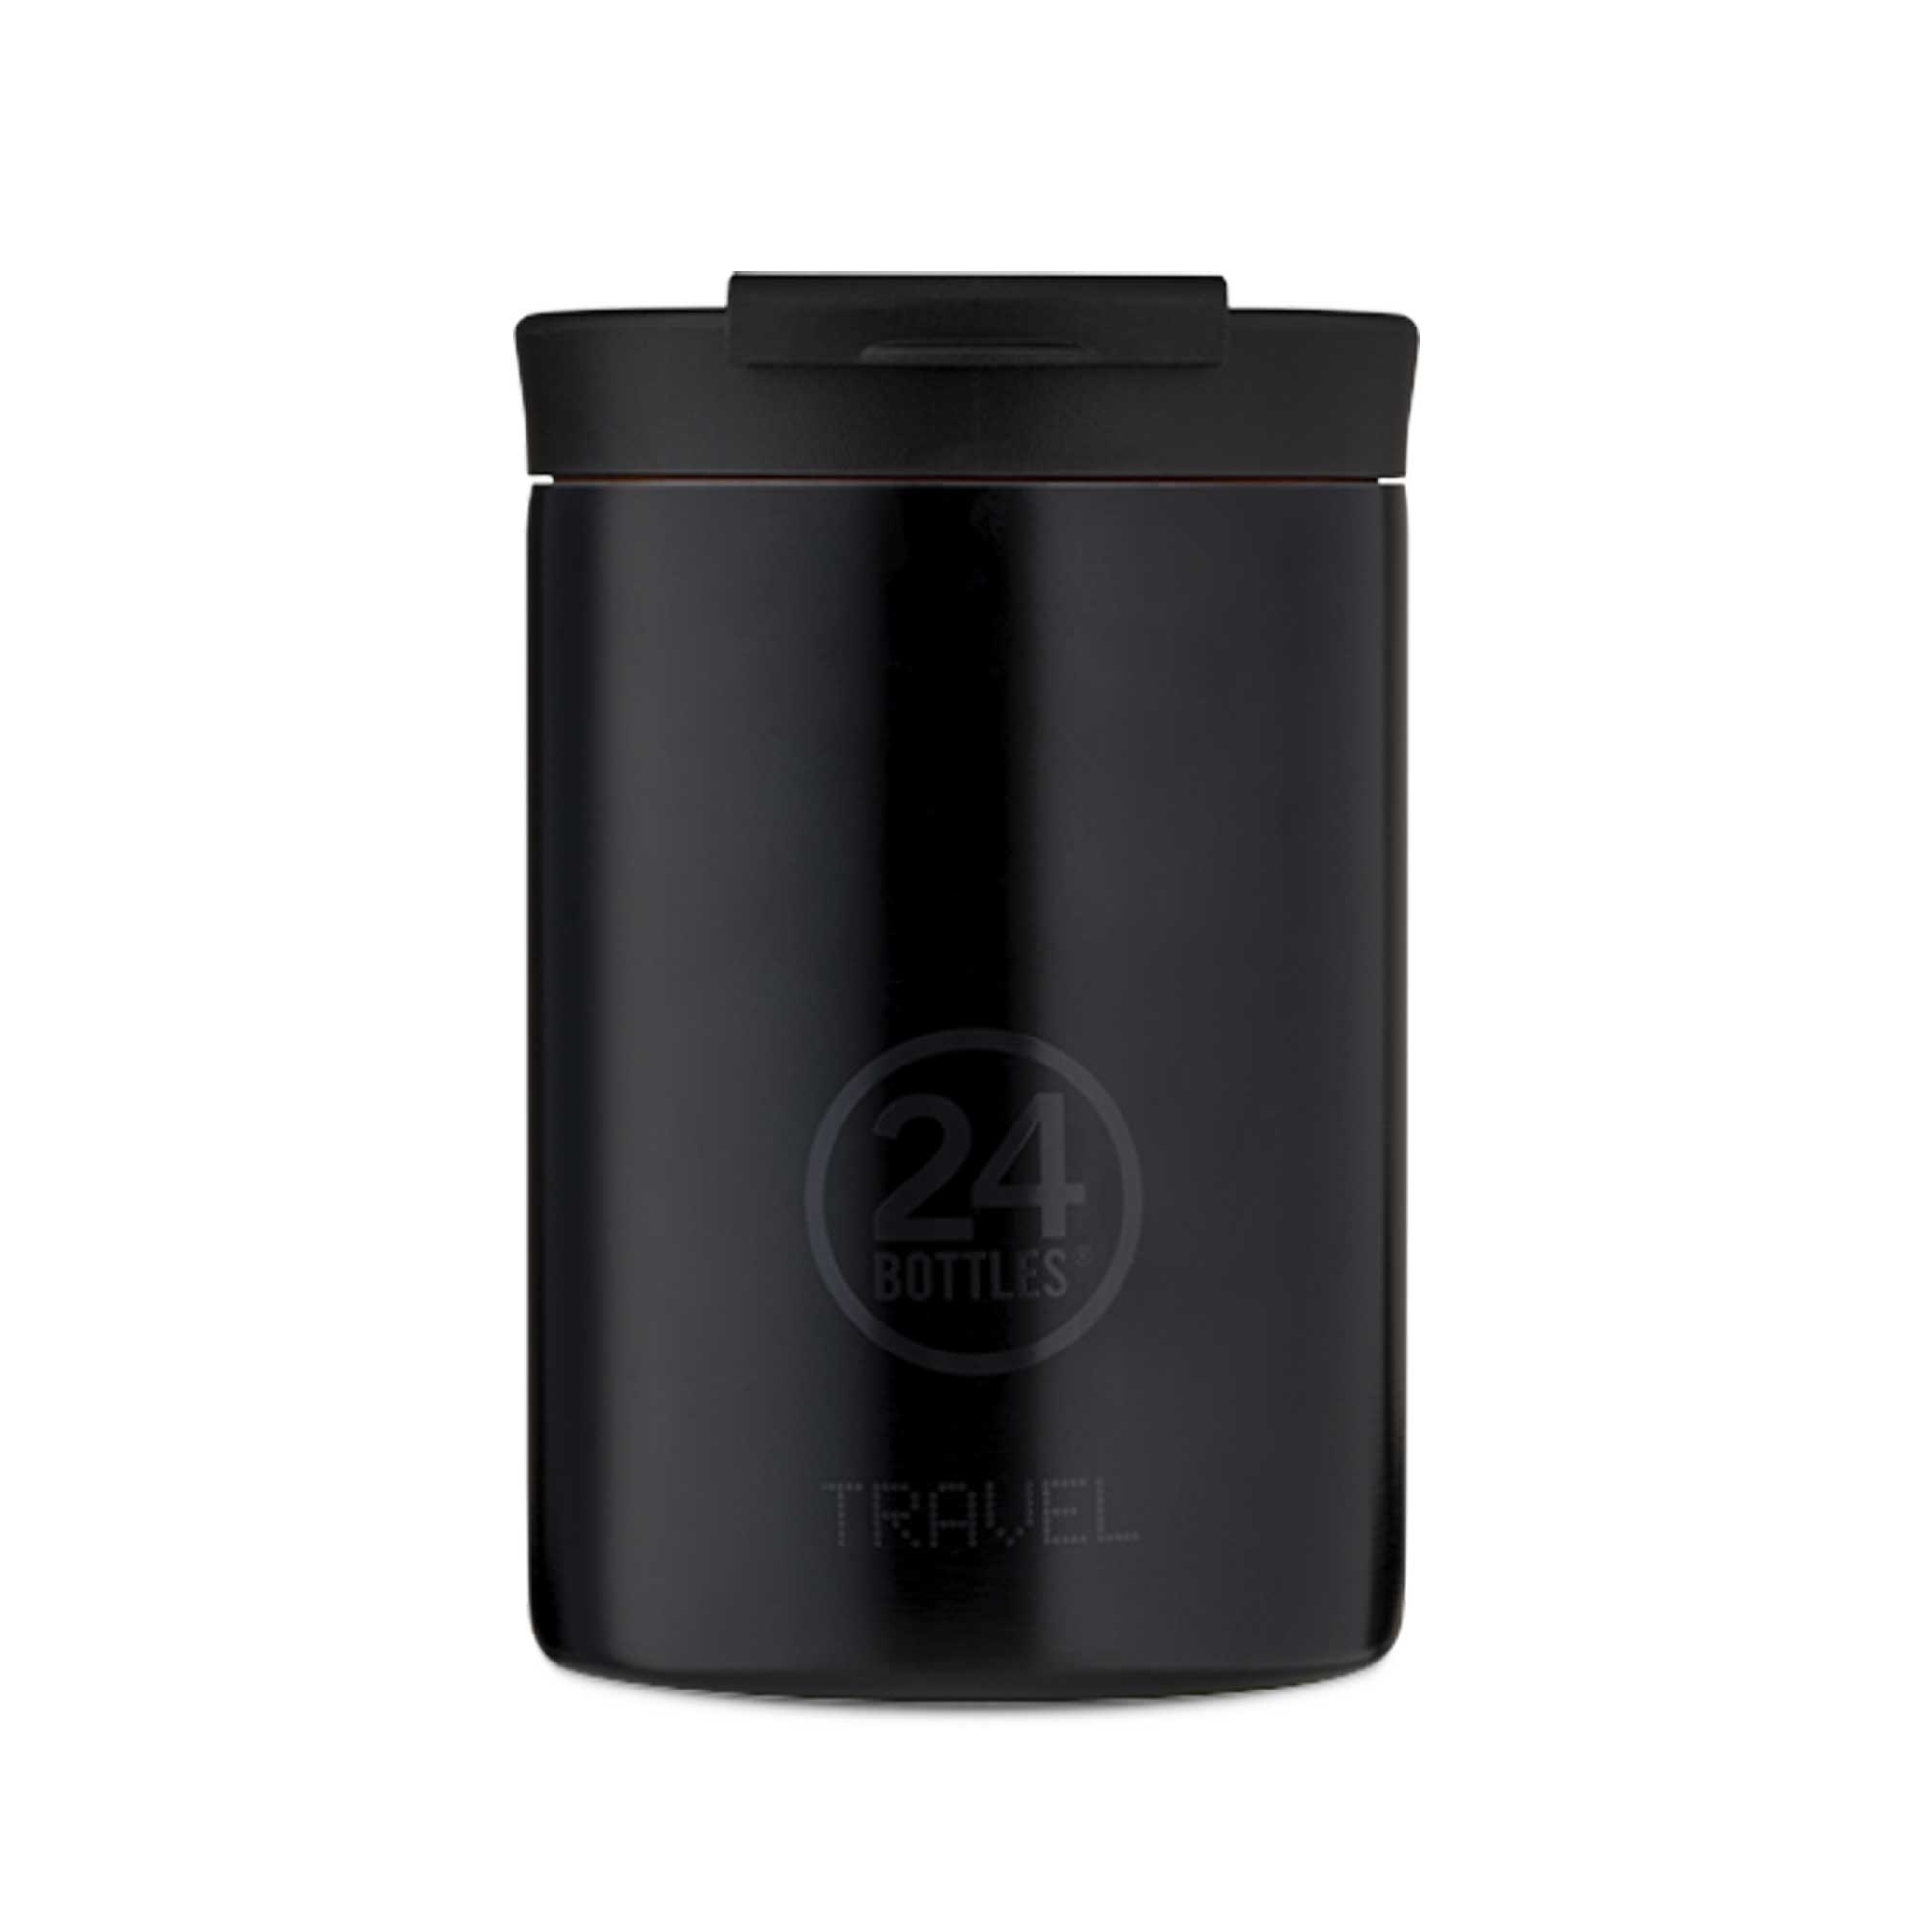 24 Bottles Travel Tumbler